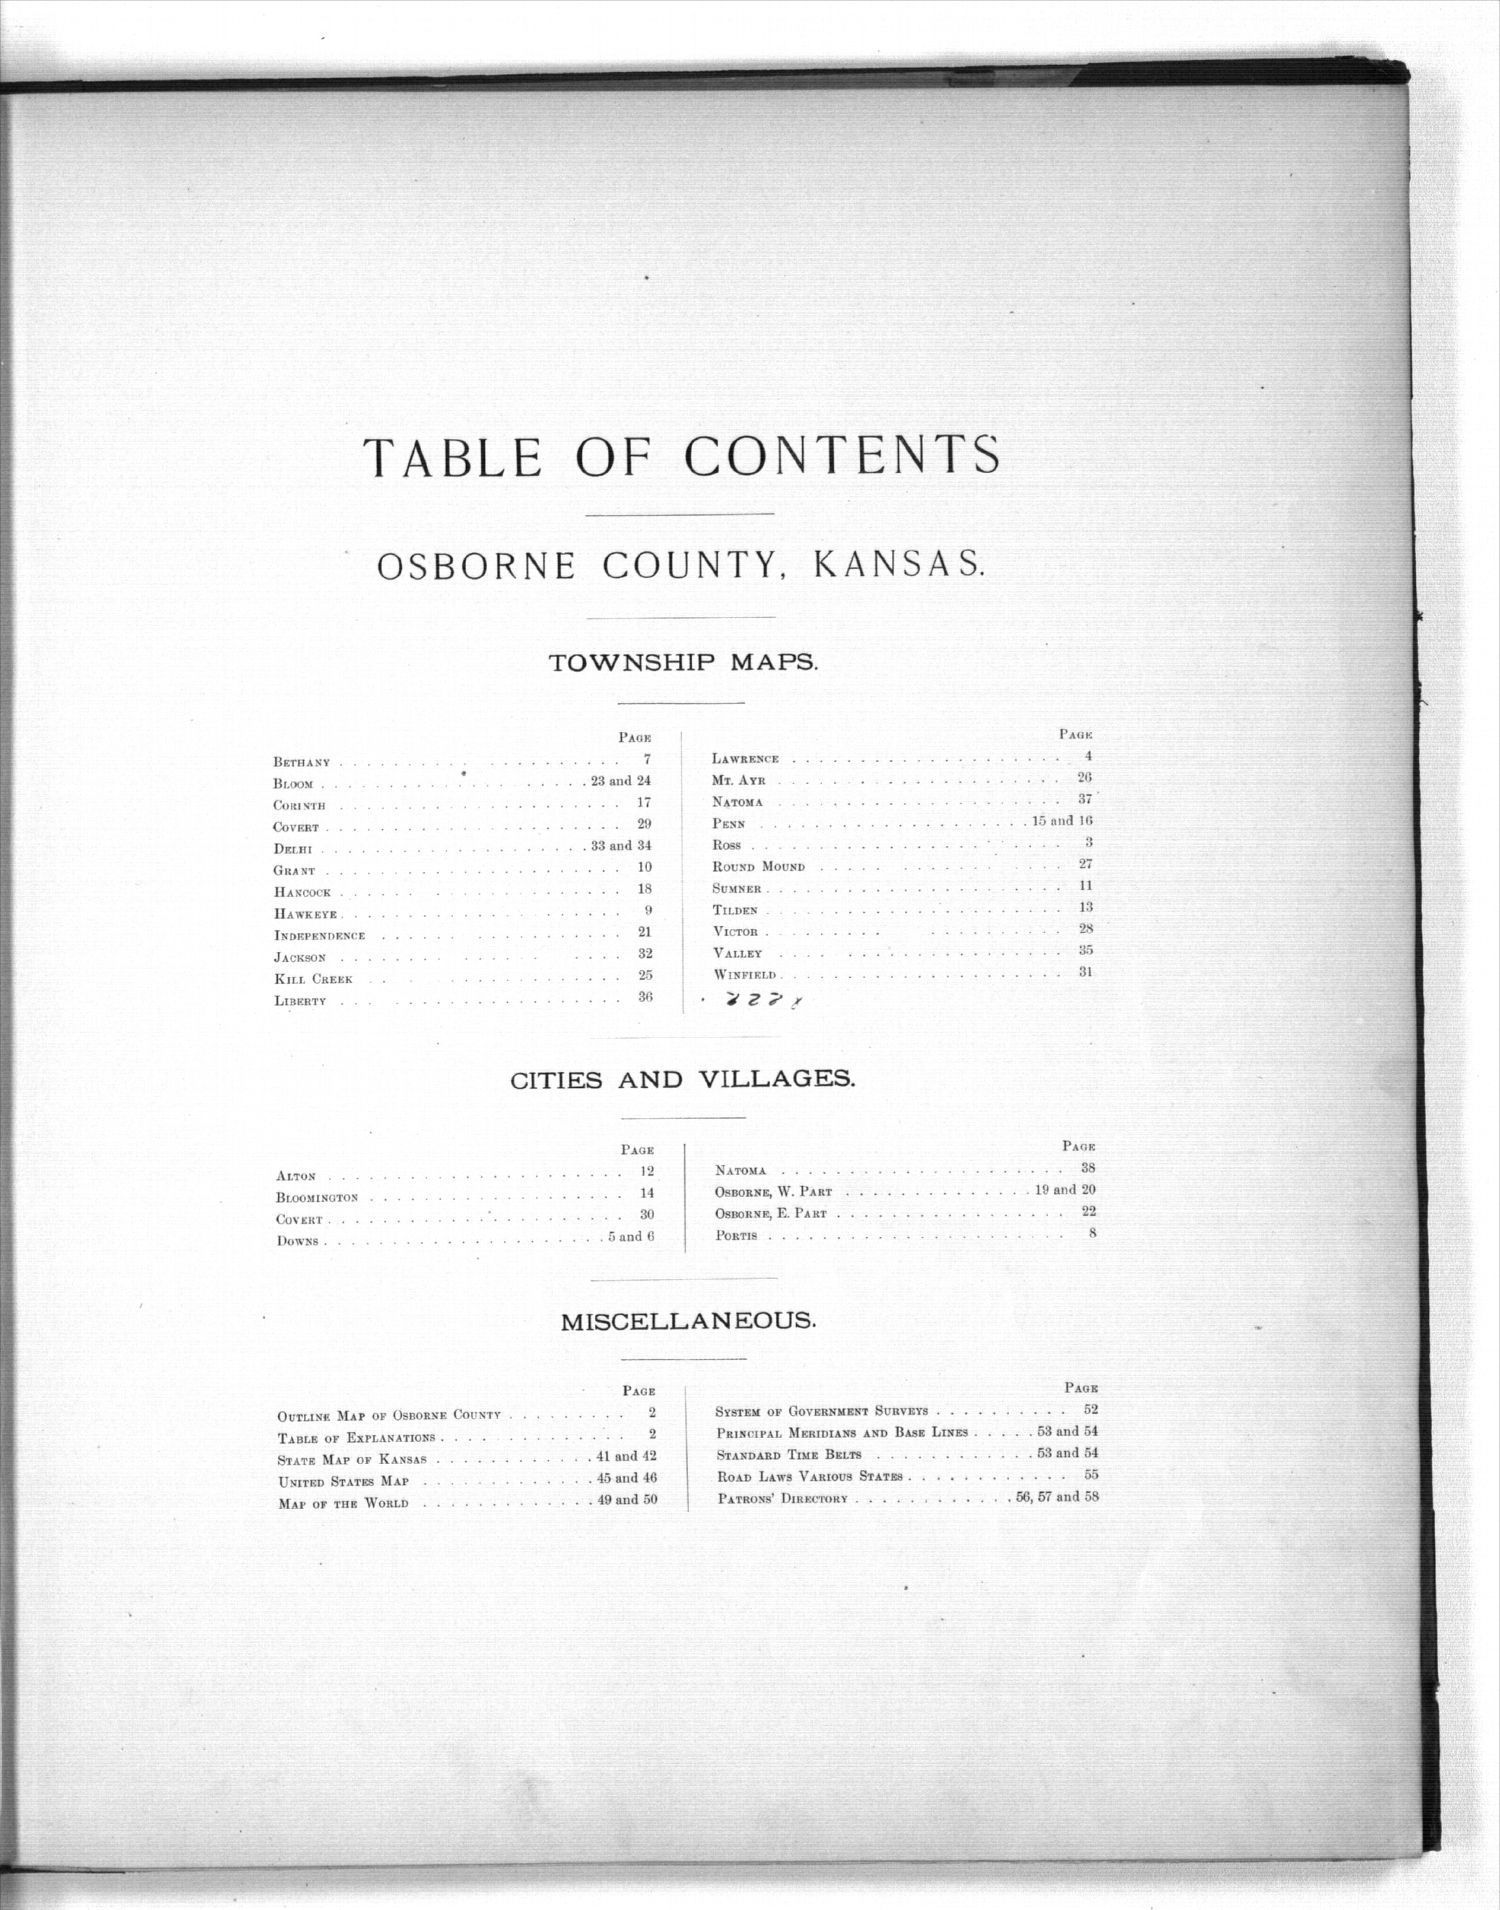 Plat book of Osborne County, Kansas - Table of Contents